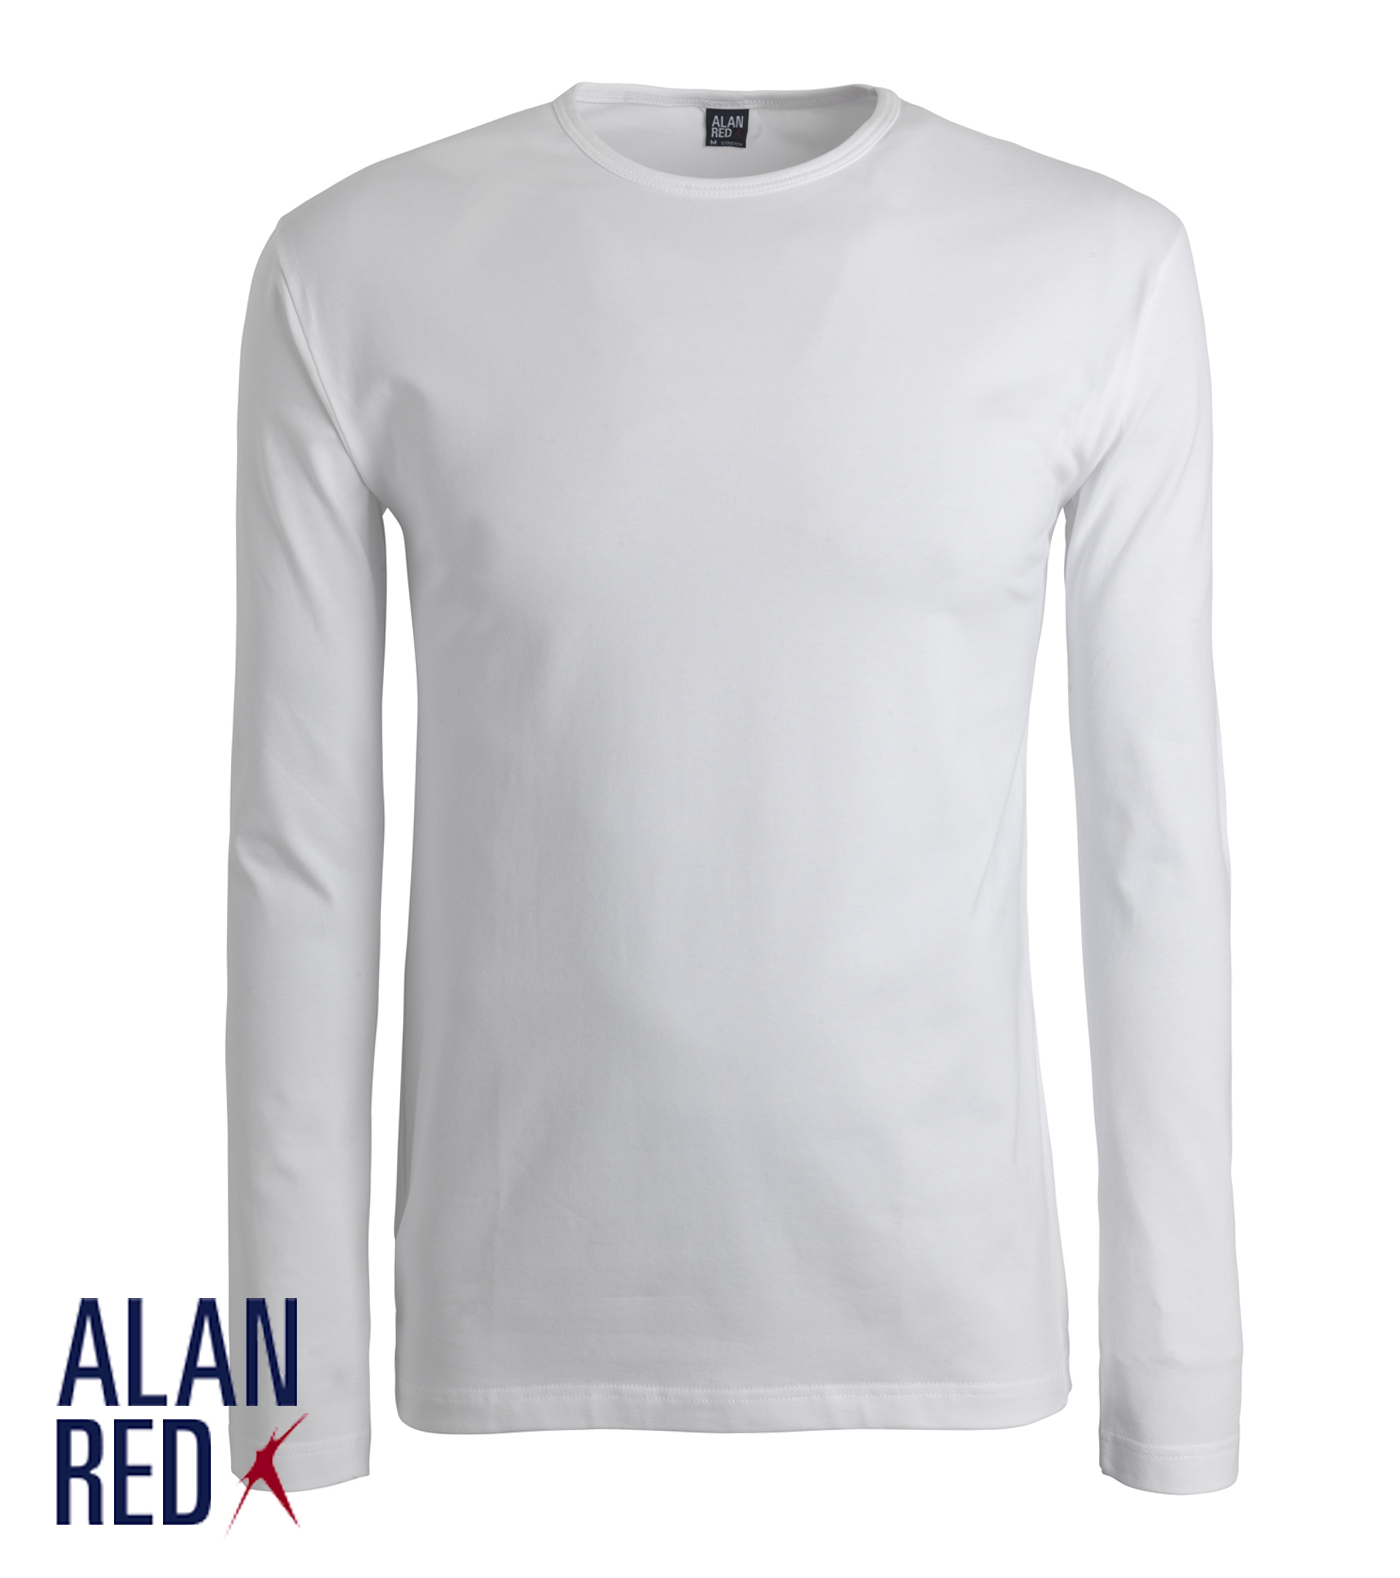 Alan Red Olbia - wit 1-pack